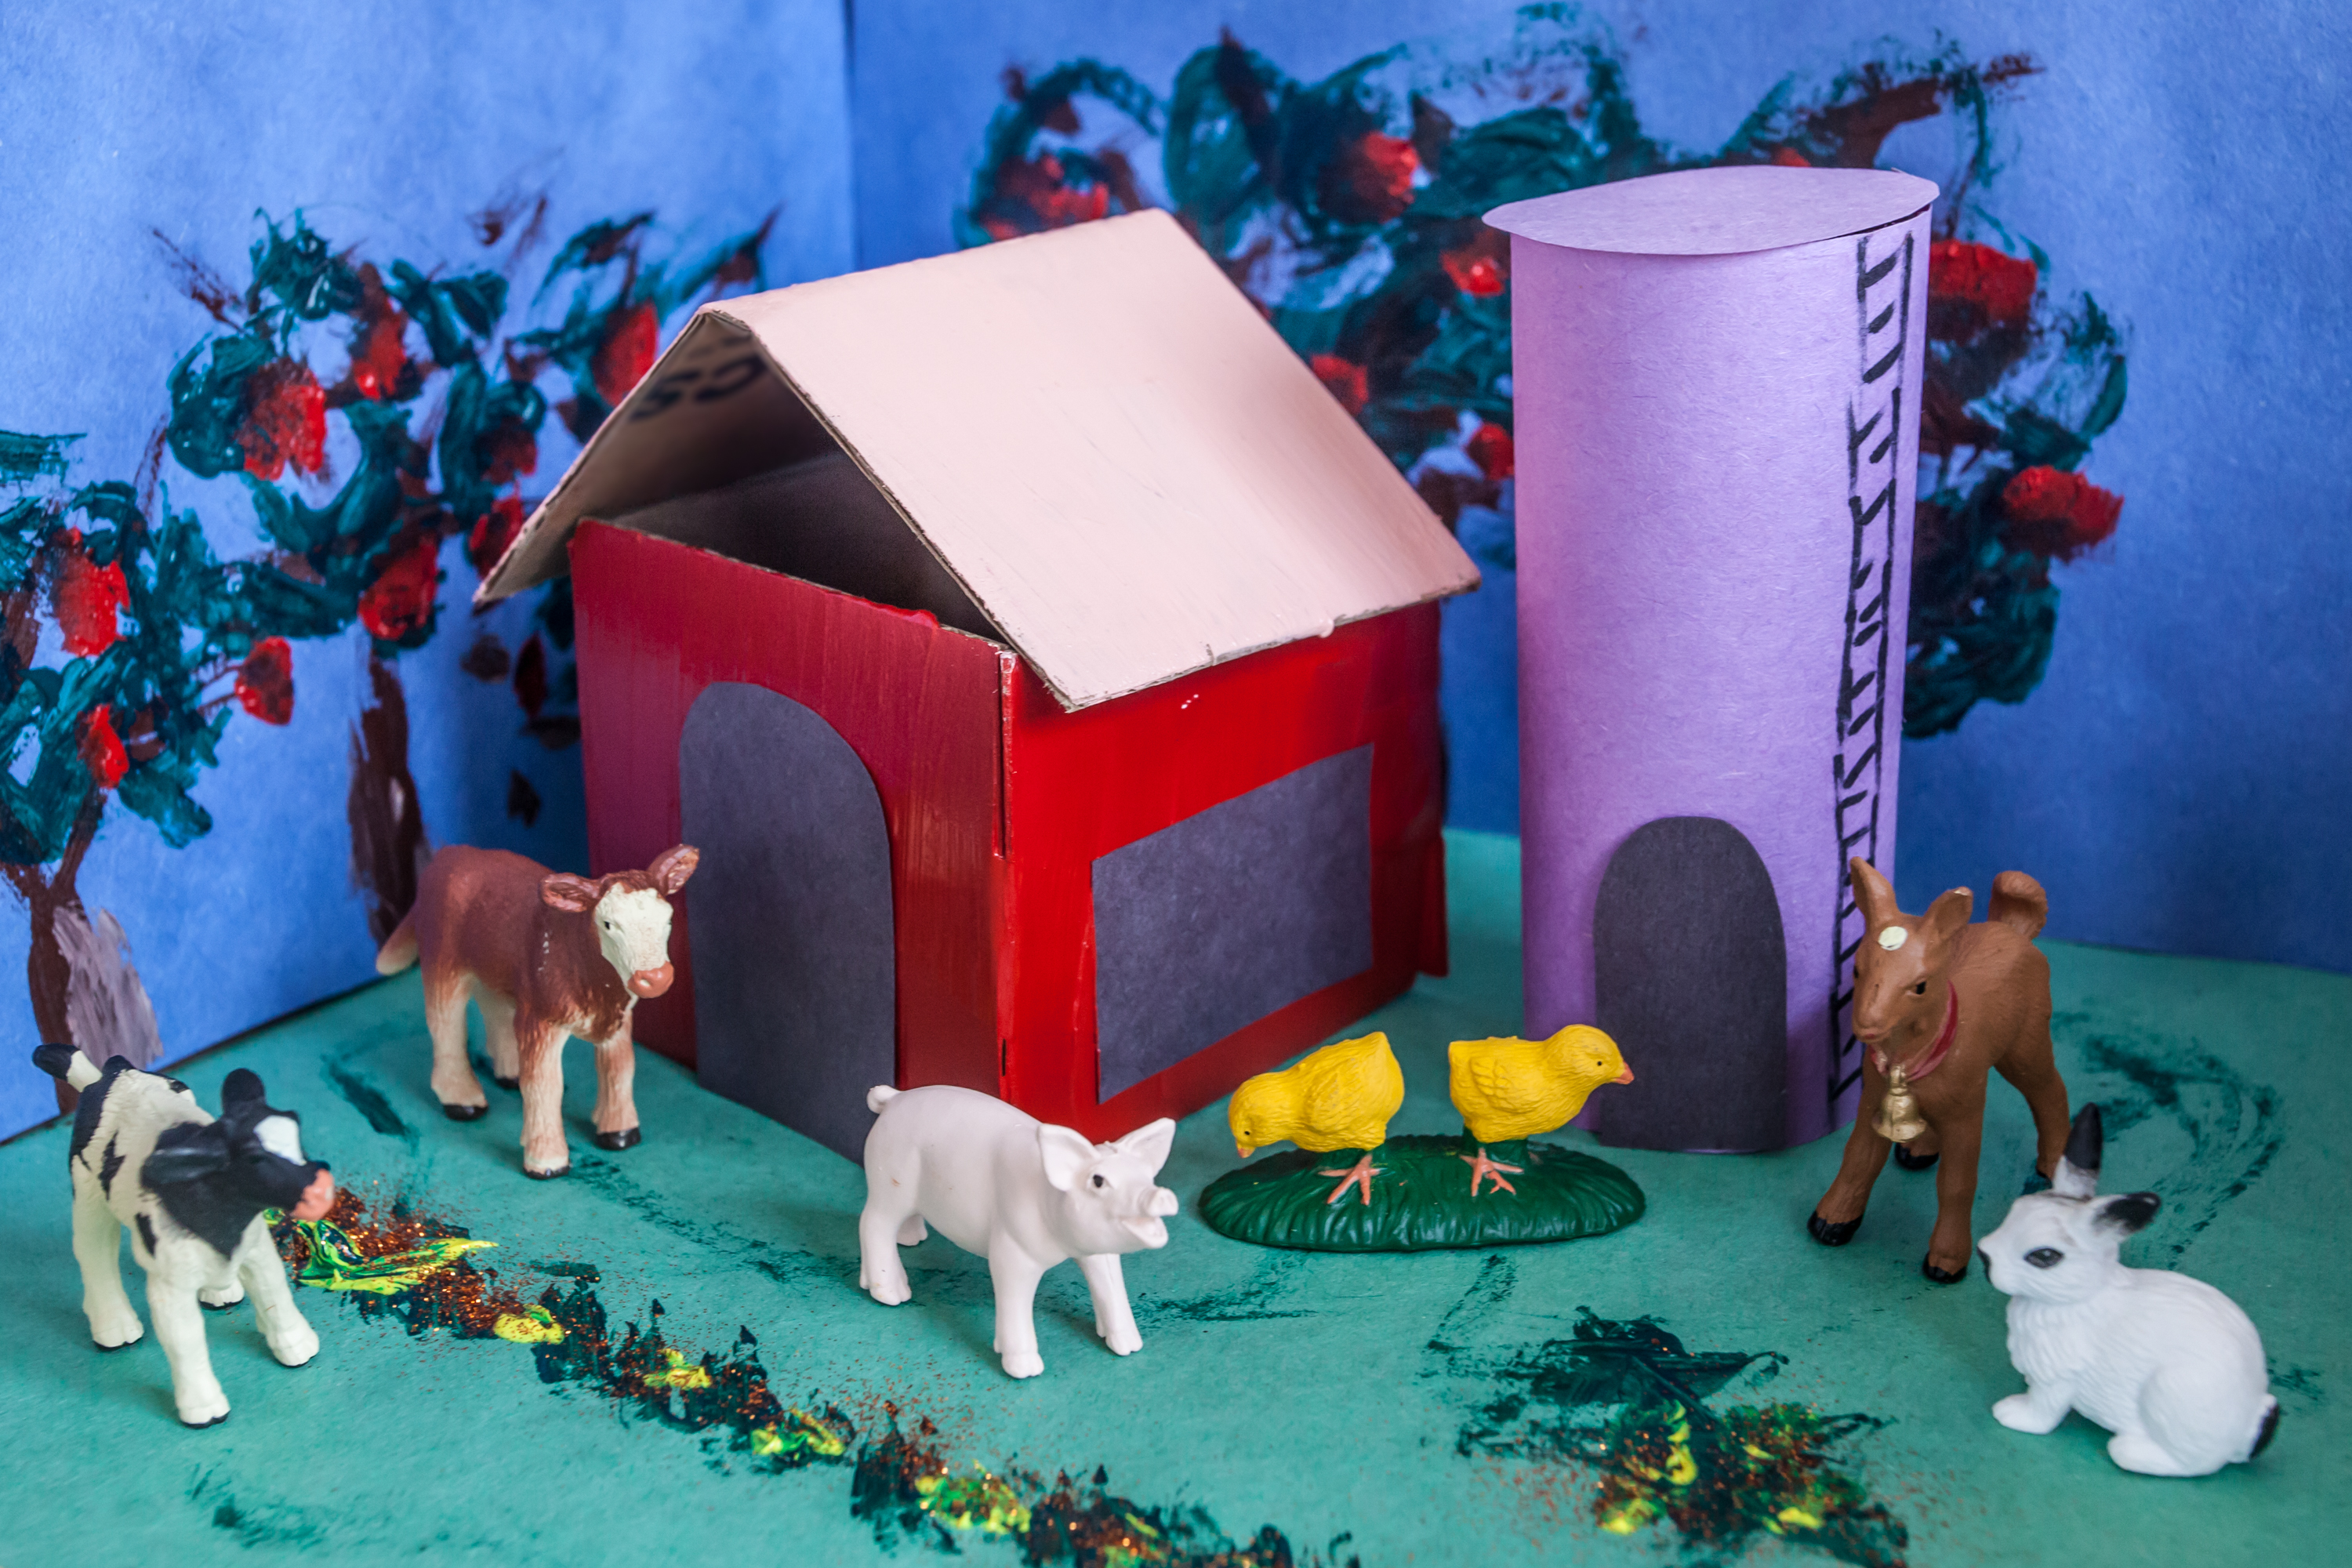 How To Build A Farm For School Project